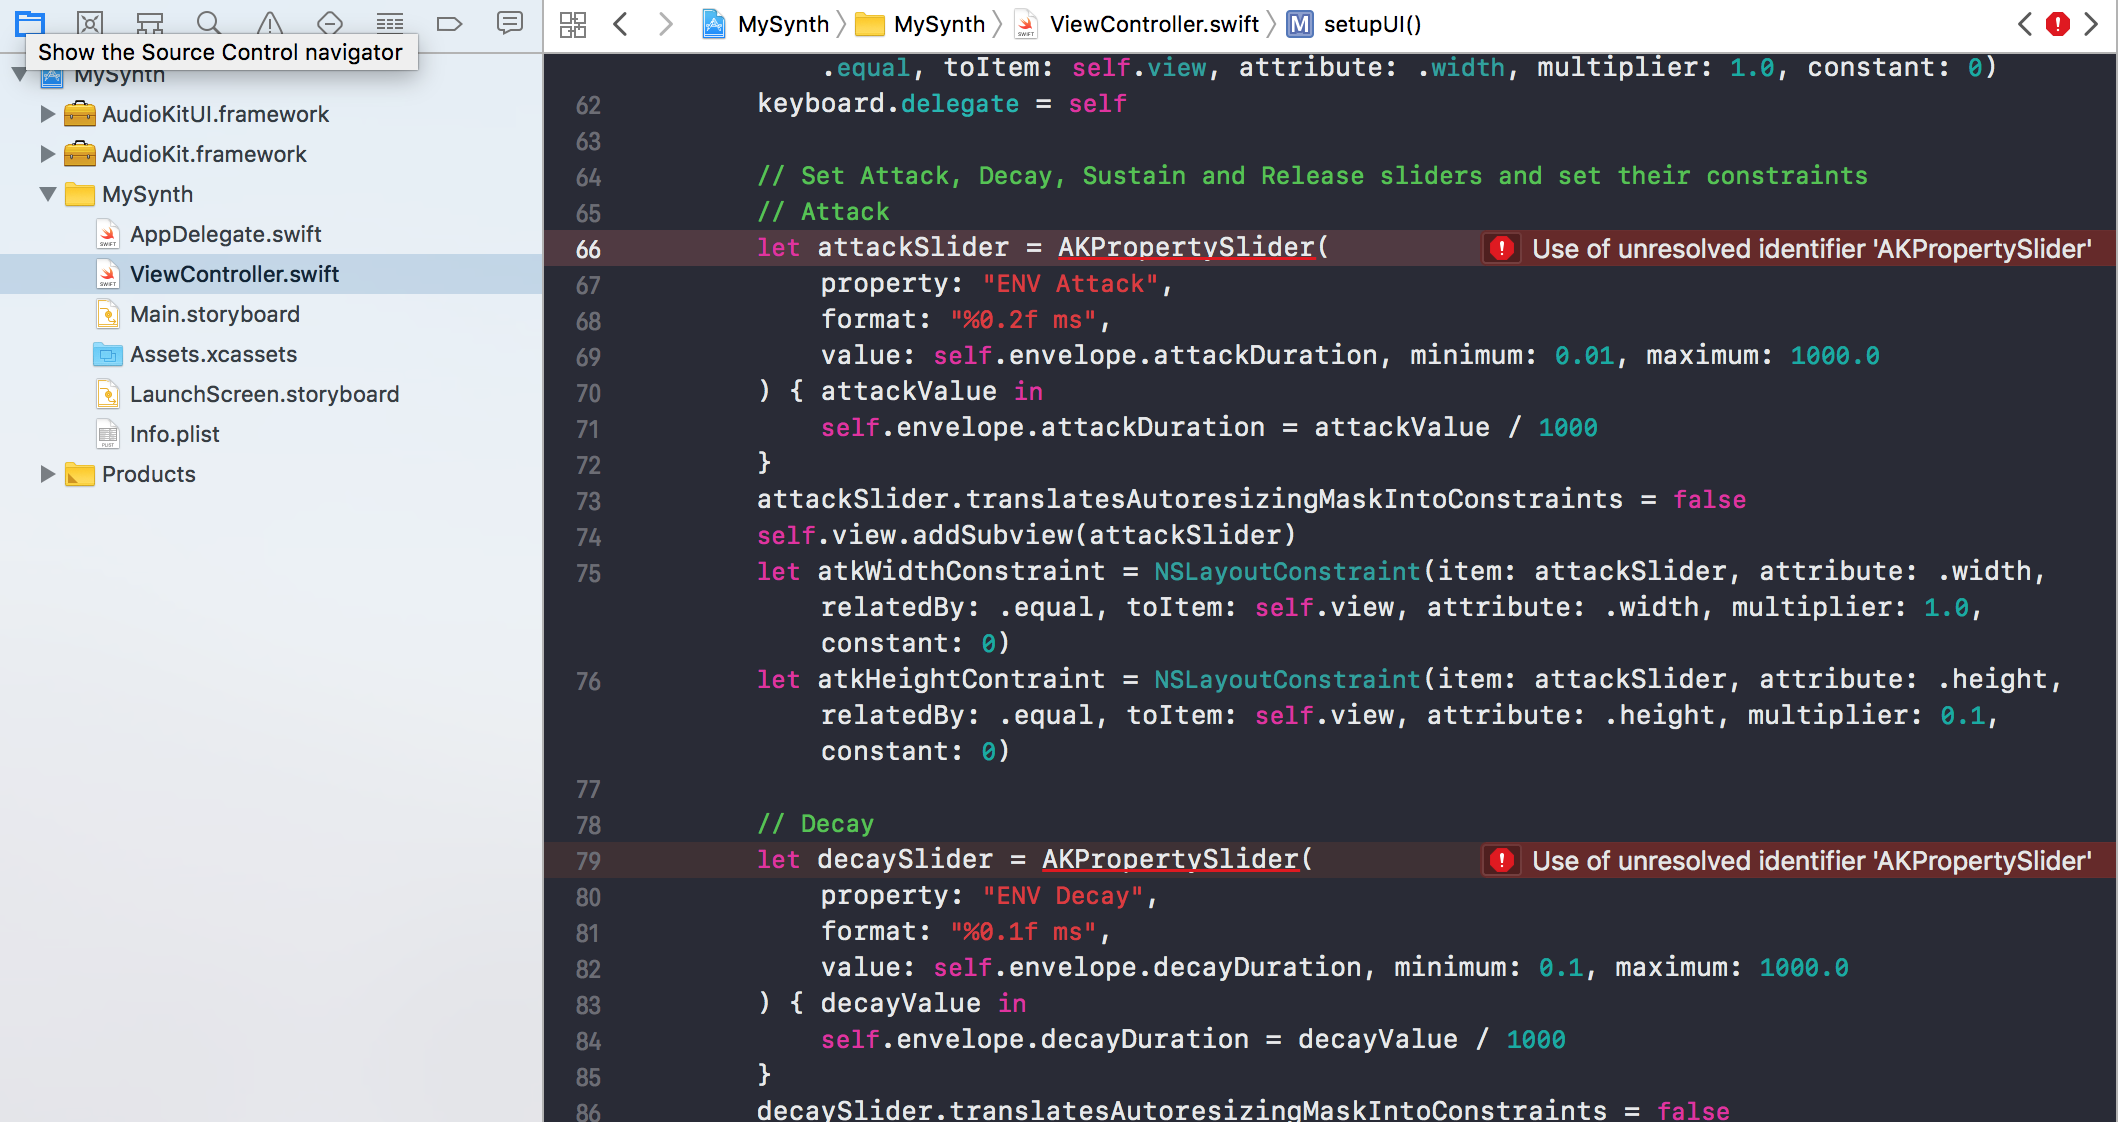 Xcode 9 1 Swift 4 Compatibility Issues · Issue #1123 · AudioKit